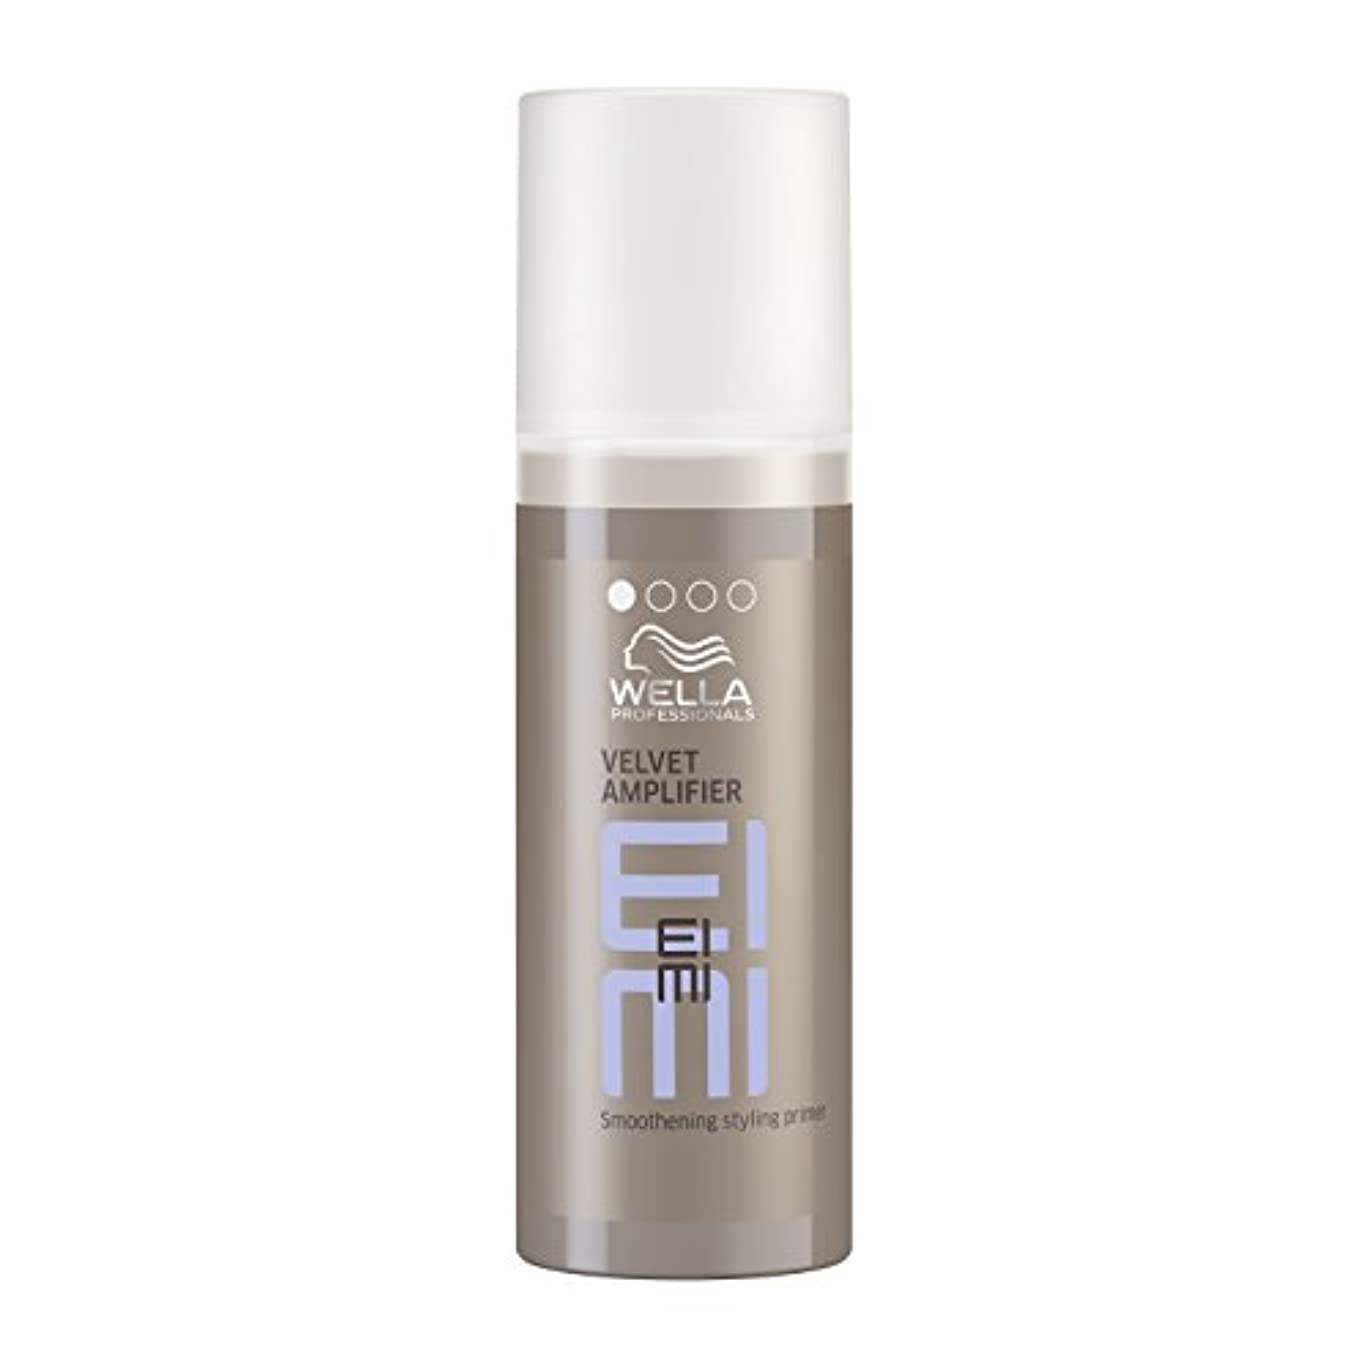 寝具救出報復するWella EIMI Velvet Amplifier Smoothening Styling Primer 50 ml [並行輸入品]